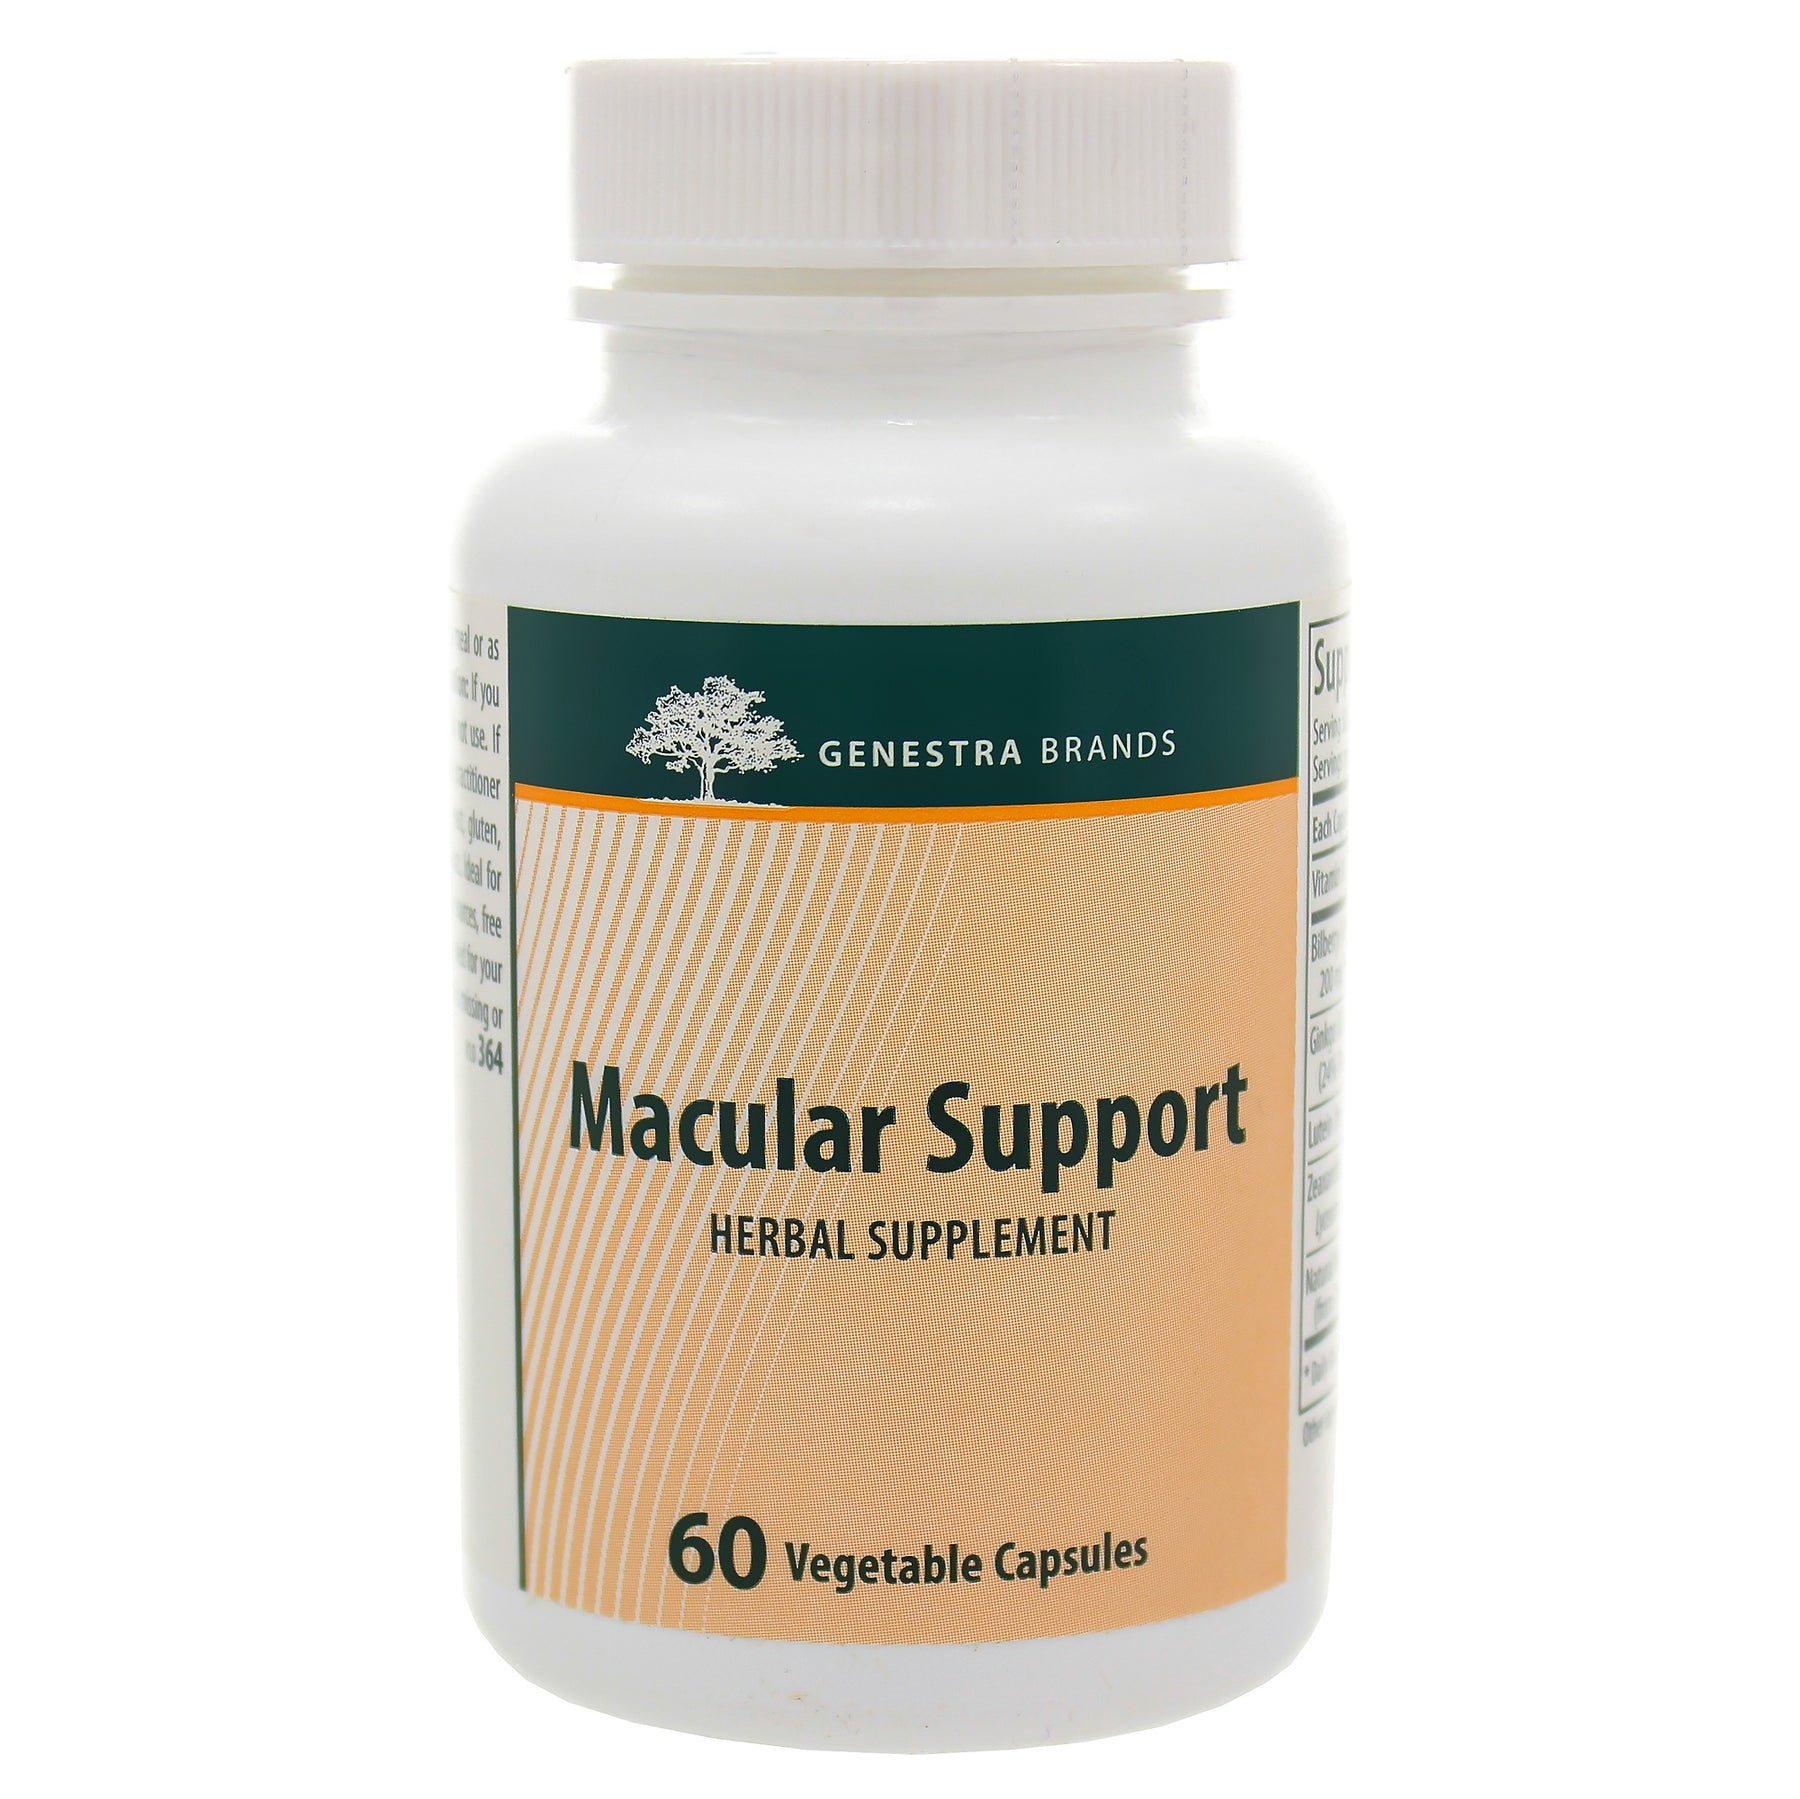 Macular Support - Nutriessential.com